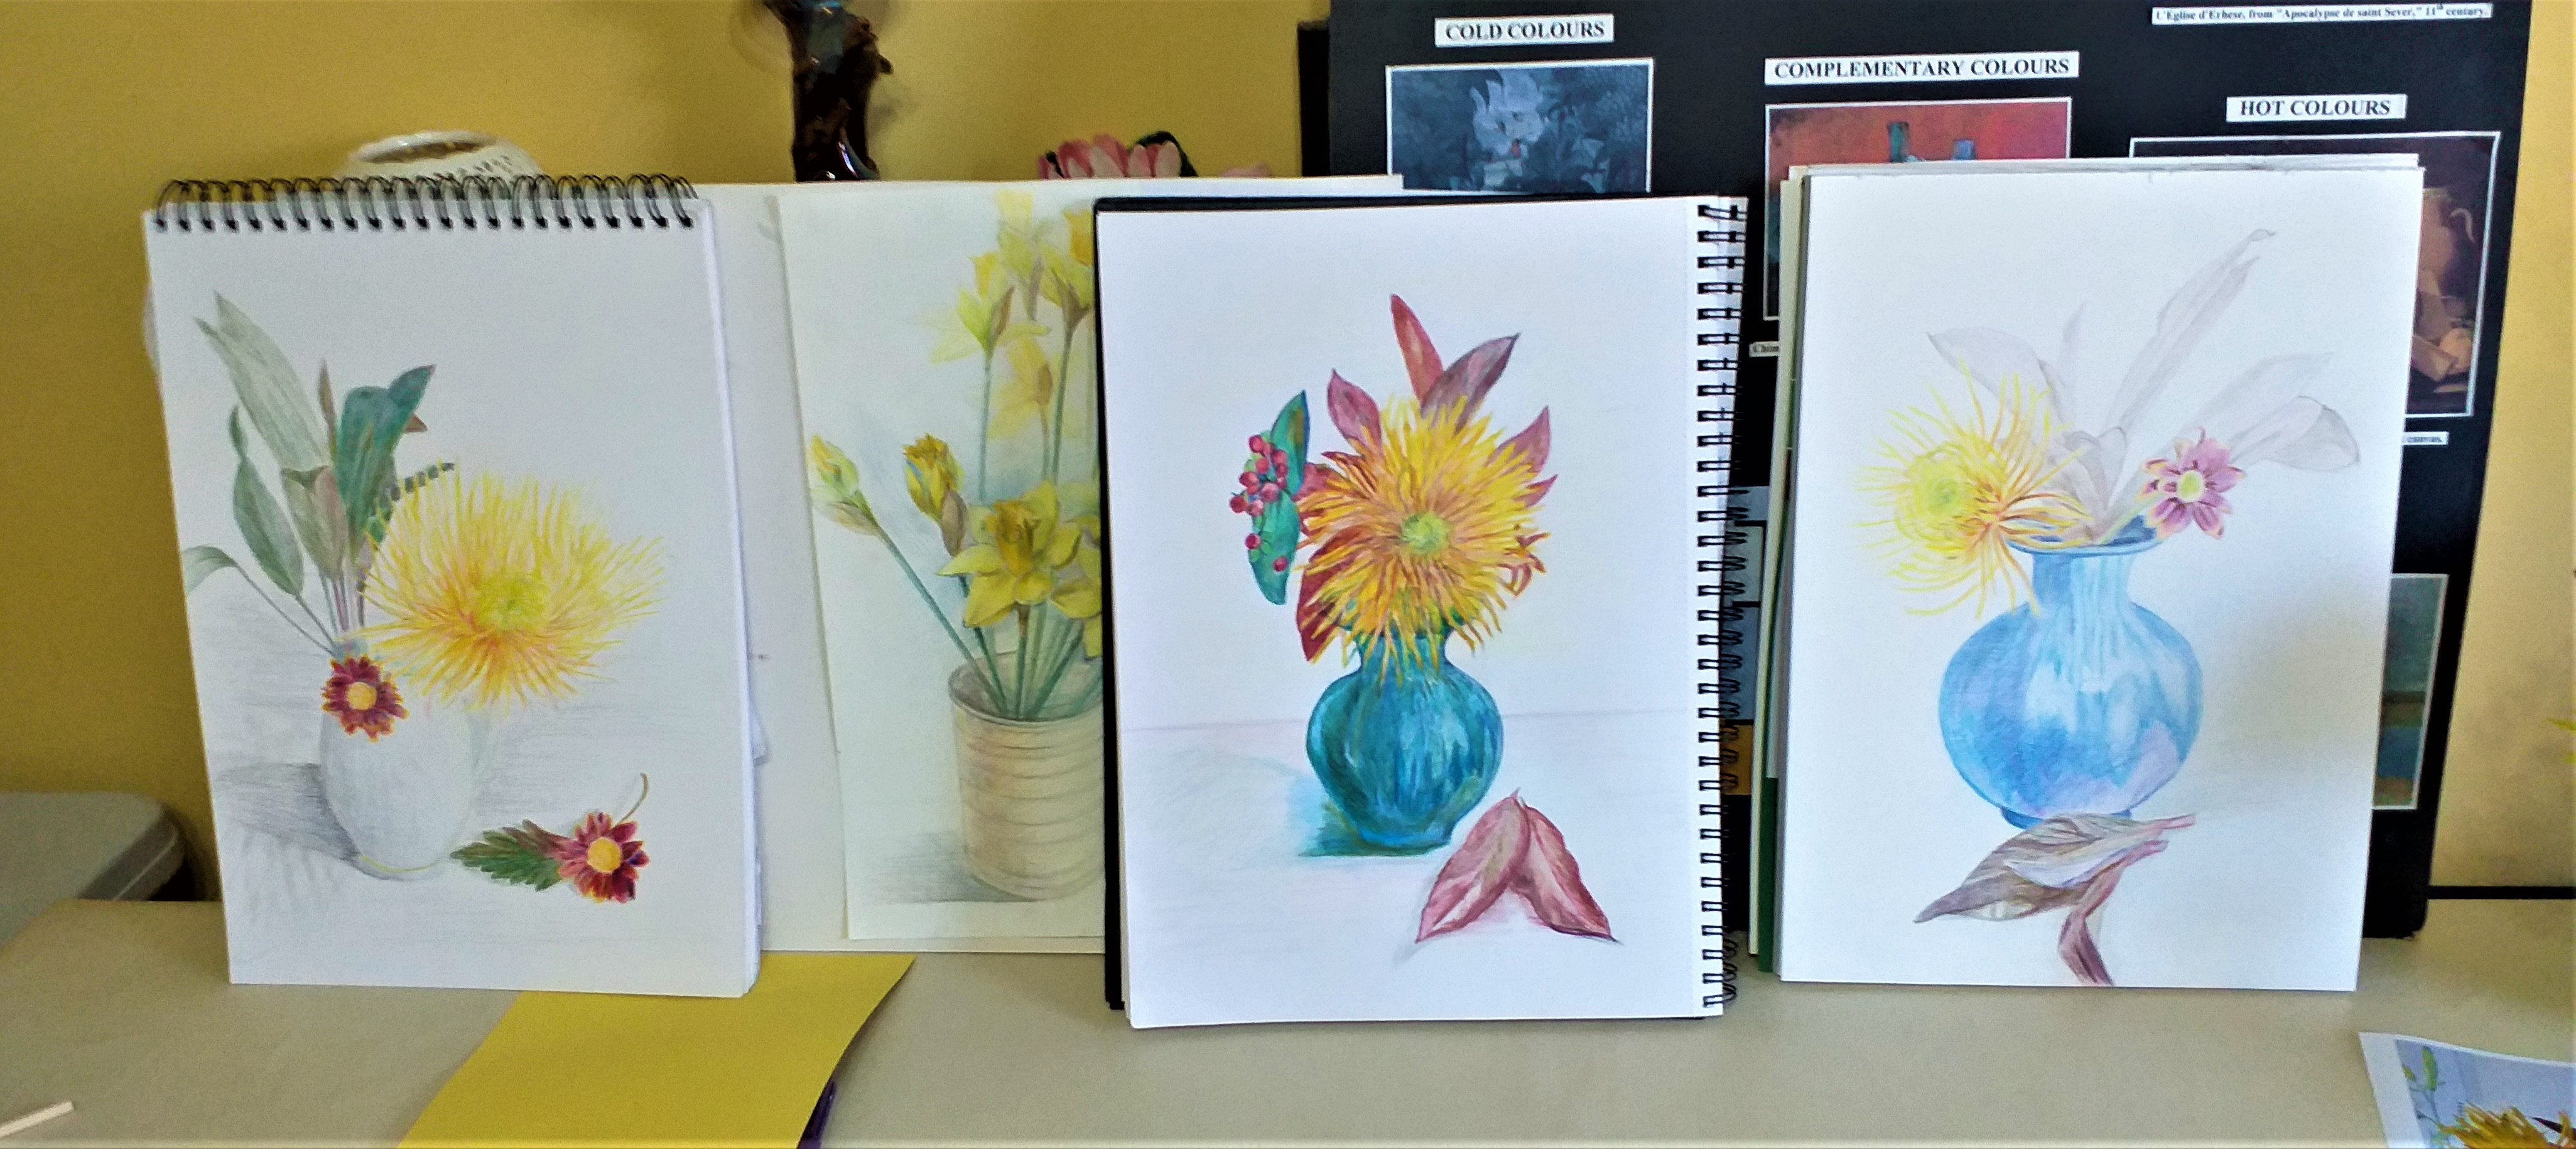 Learn how to draw with coloured pencils at Art Classes in Kidderminster Worcestershire